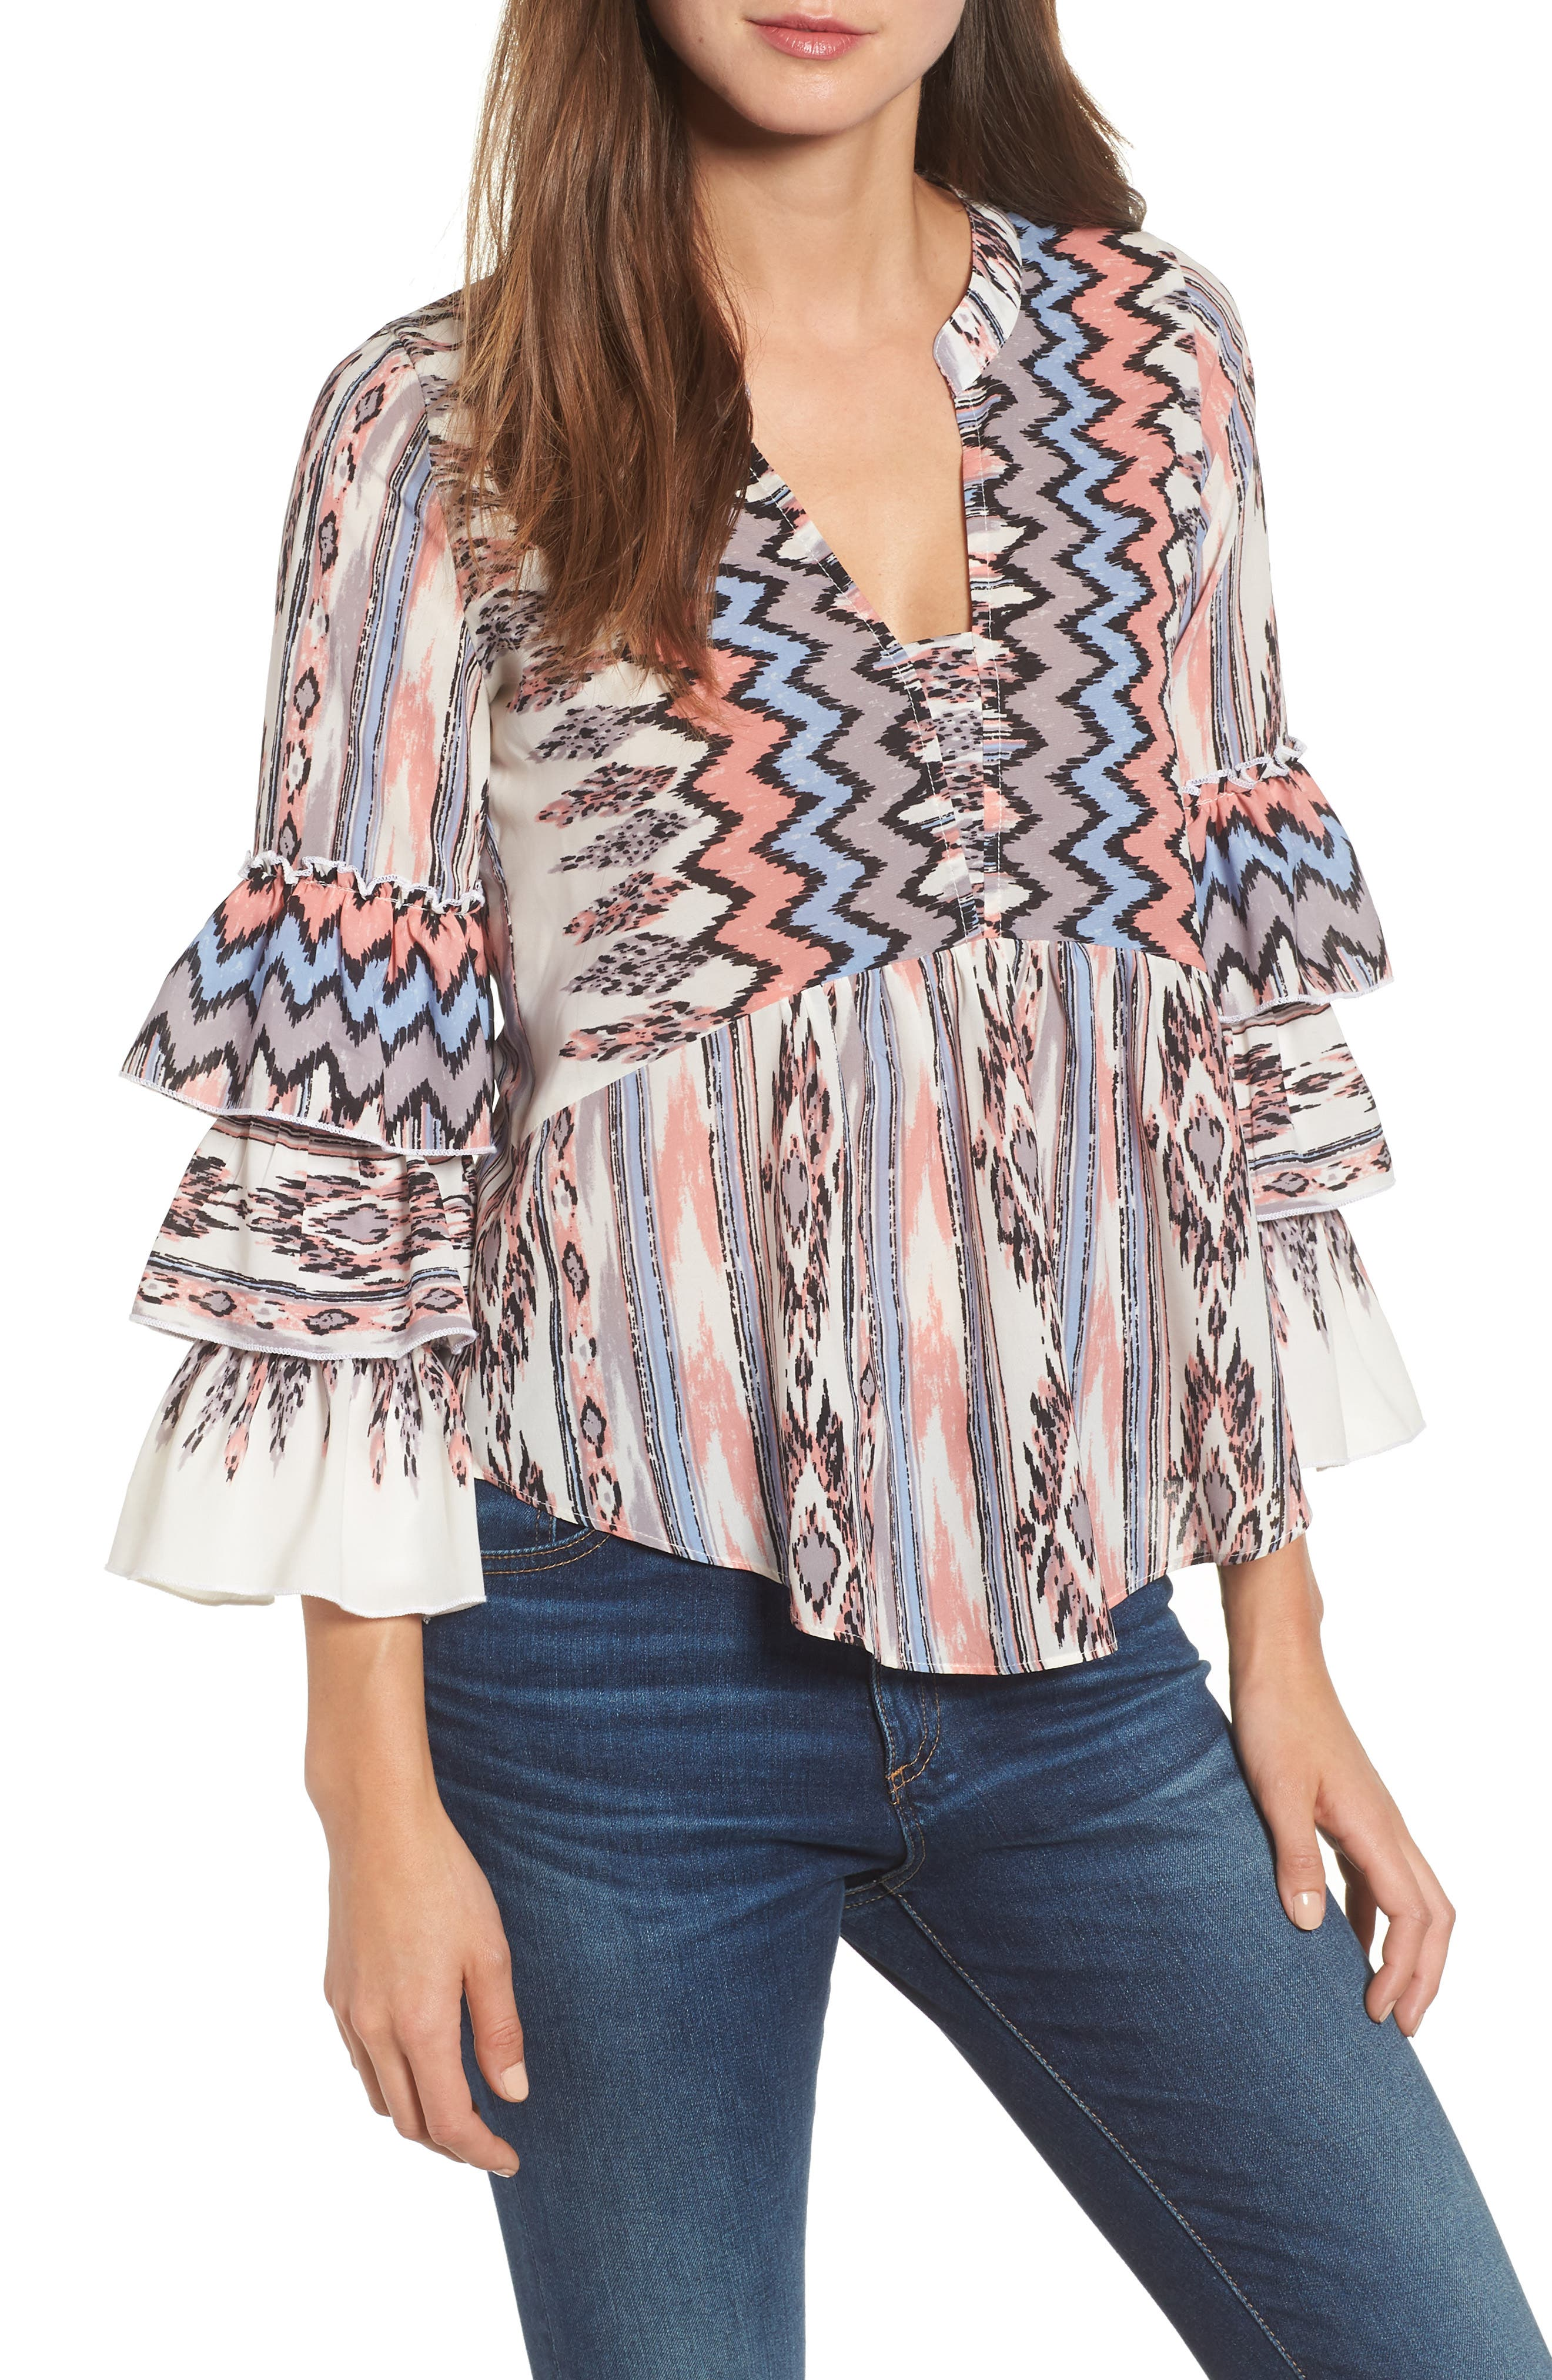 Adams Ruffled Sleeve Blouse,                             Main thumbnail 1, color,